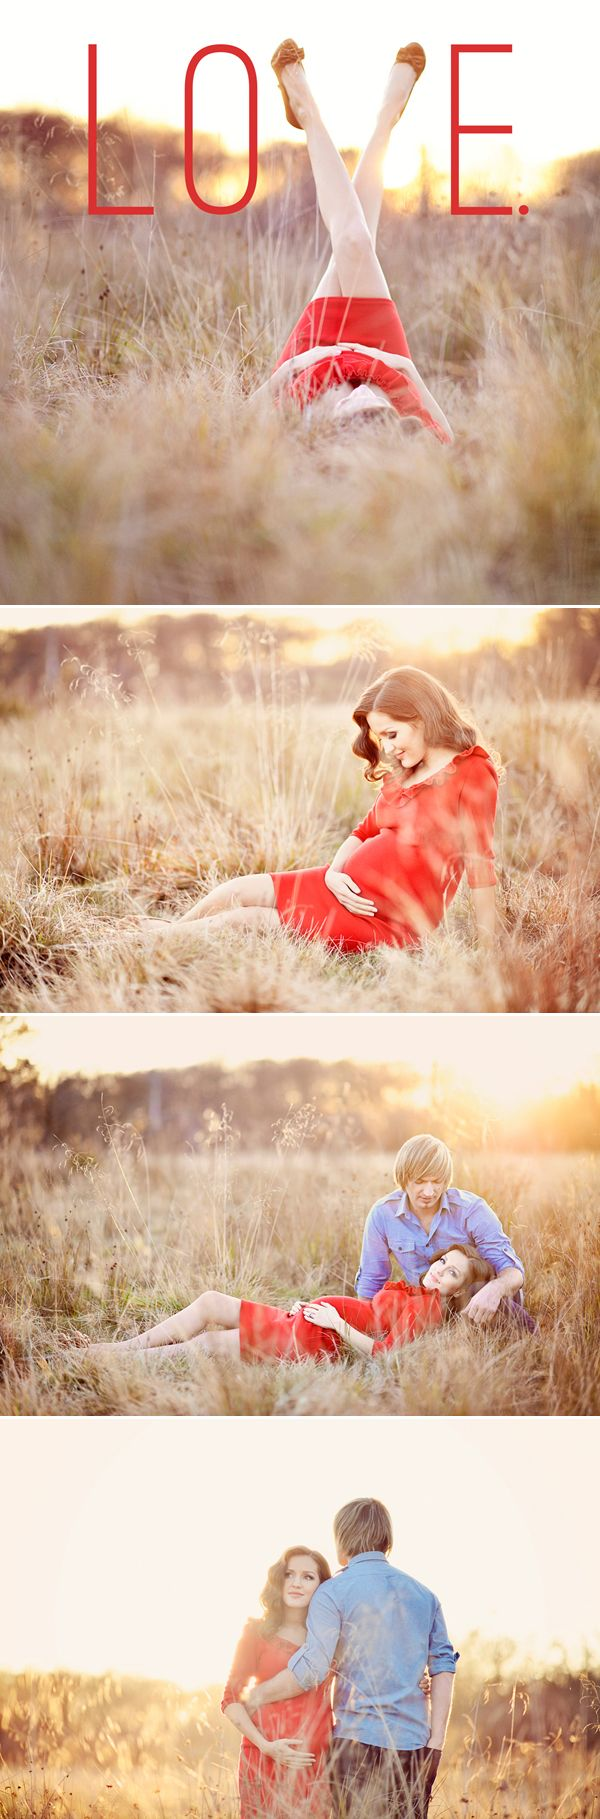 https://www.echopaul.com/ #maternity #photography A Miracle of Love – Outdoor Maternity Session from Emm & Clau